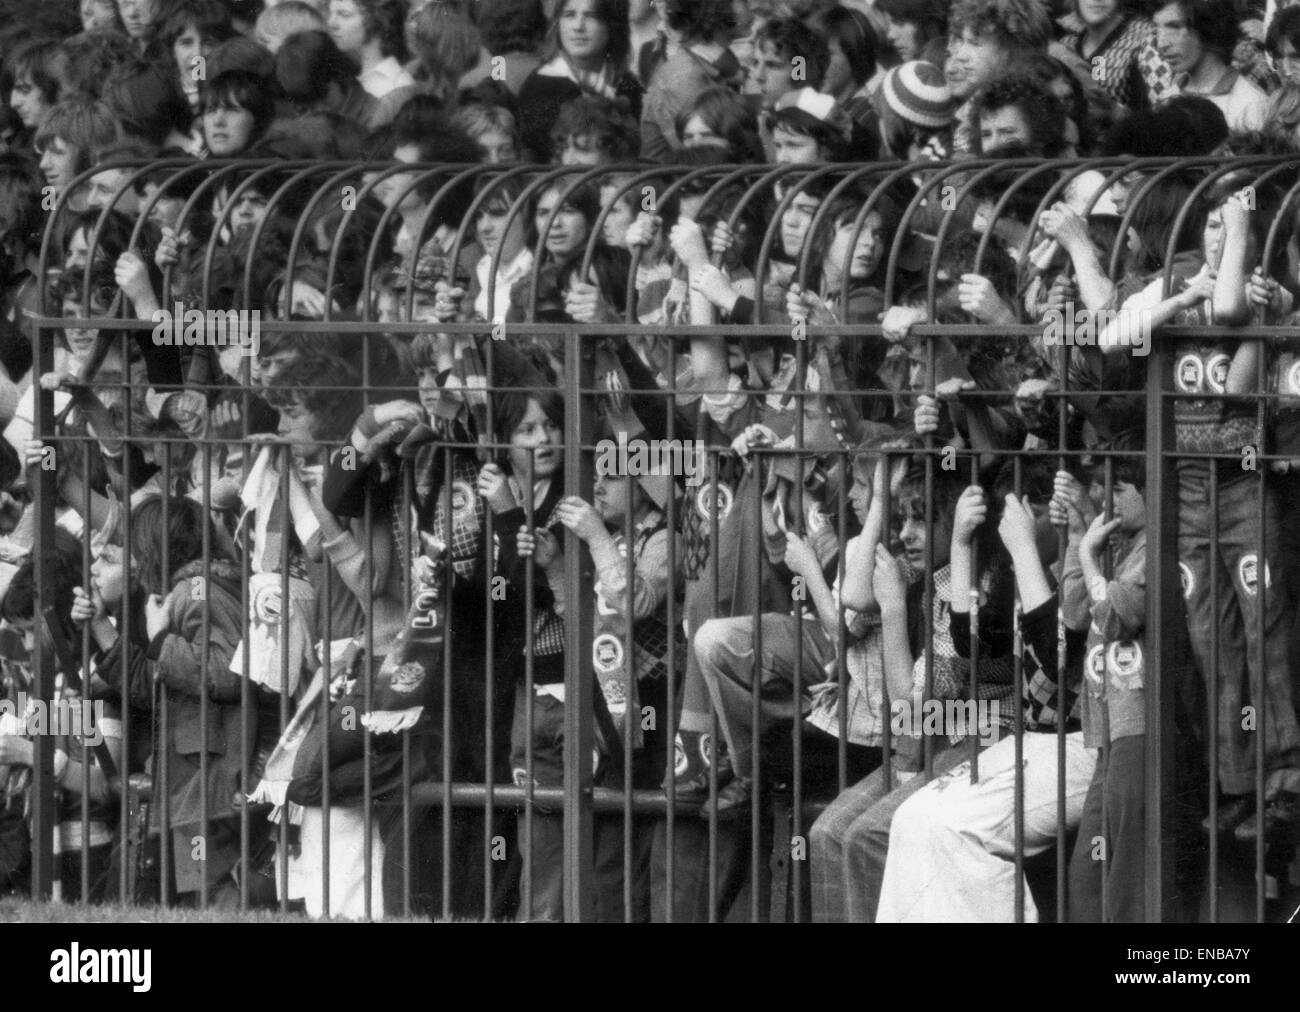 A section of the caged fans at the Stretford End of Old Trafford watching the match. Circa August 1974. - Stock Image